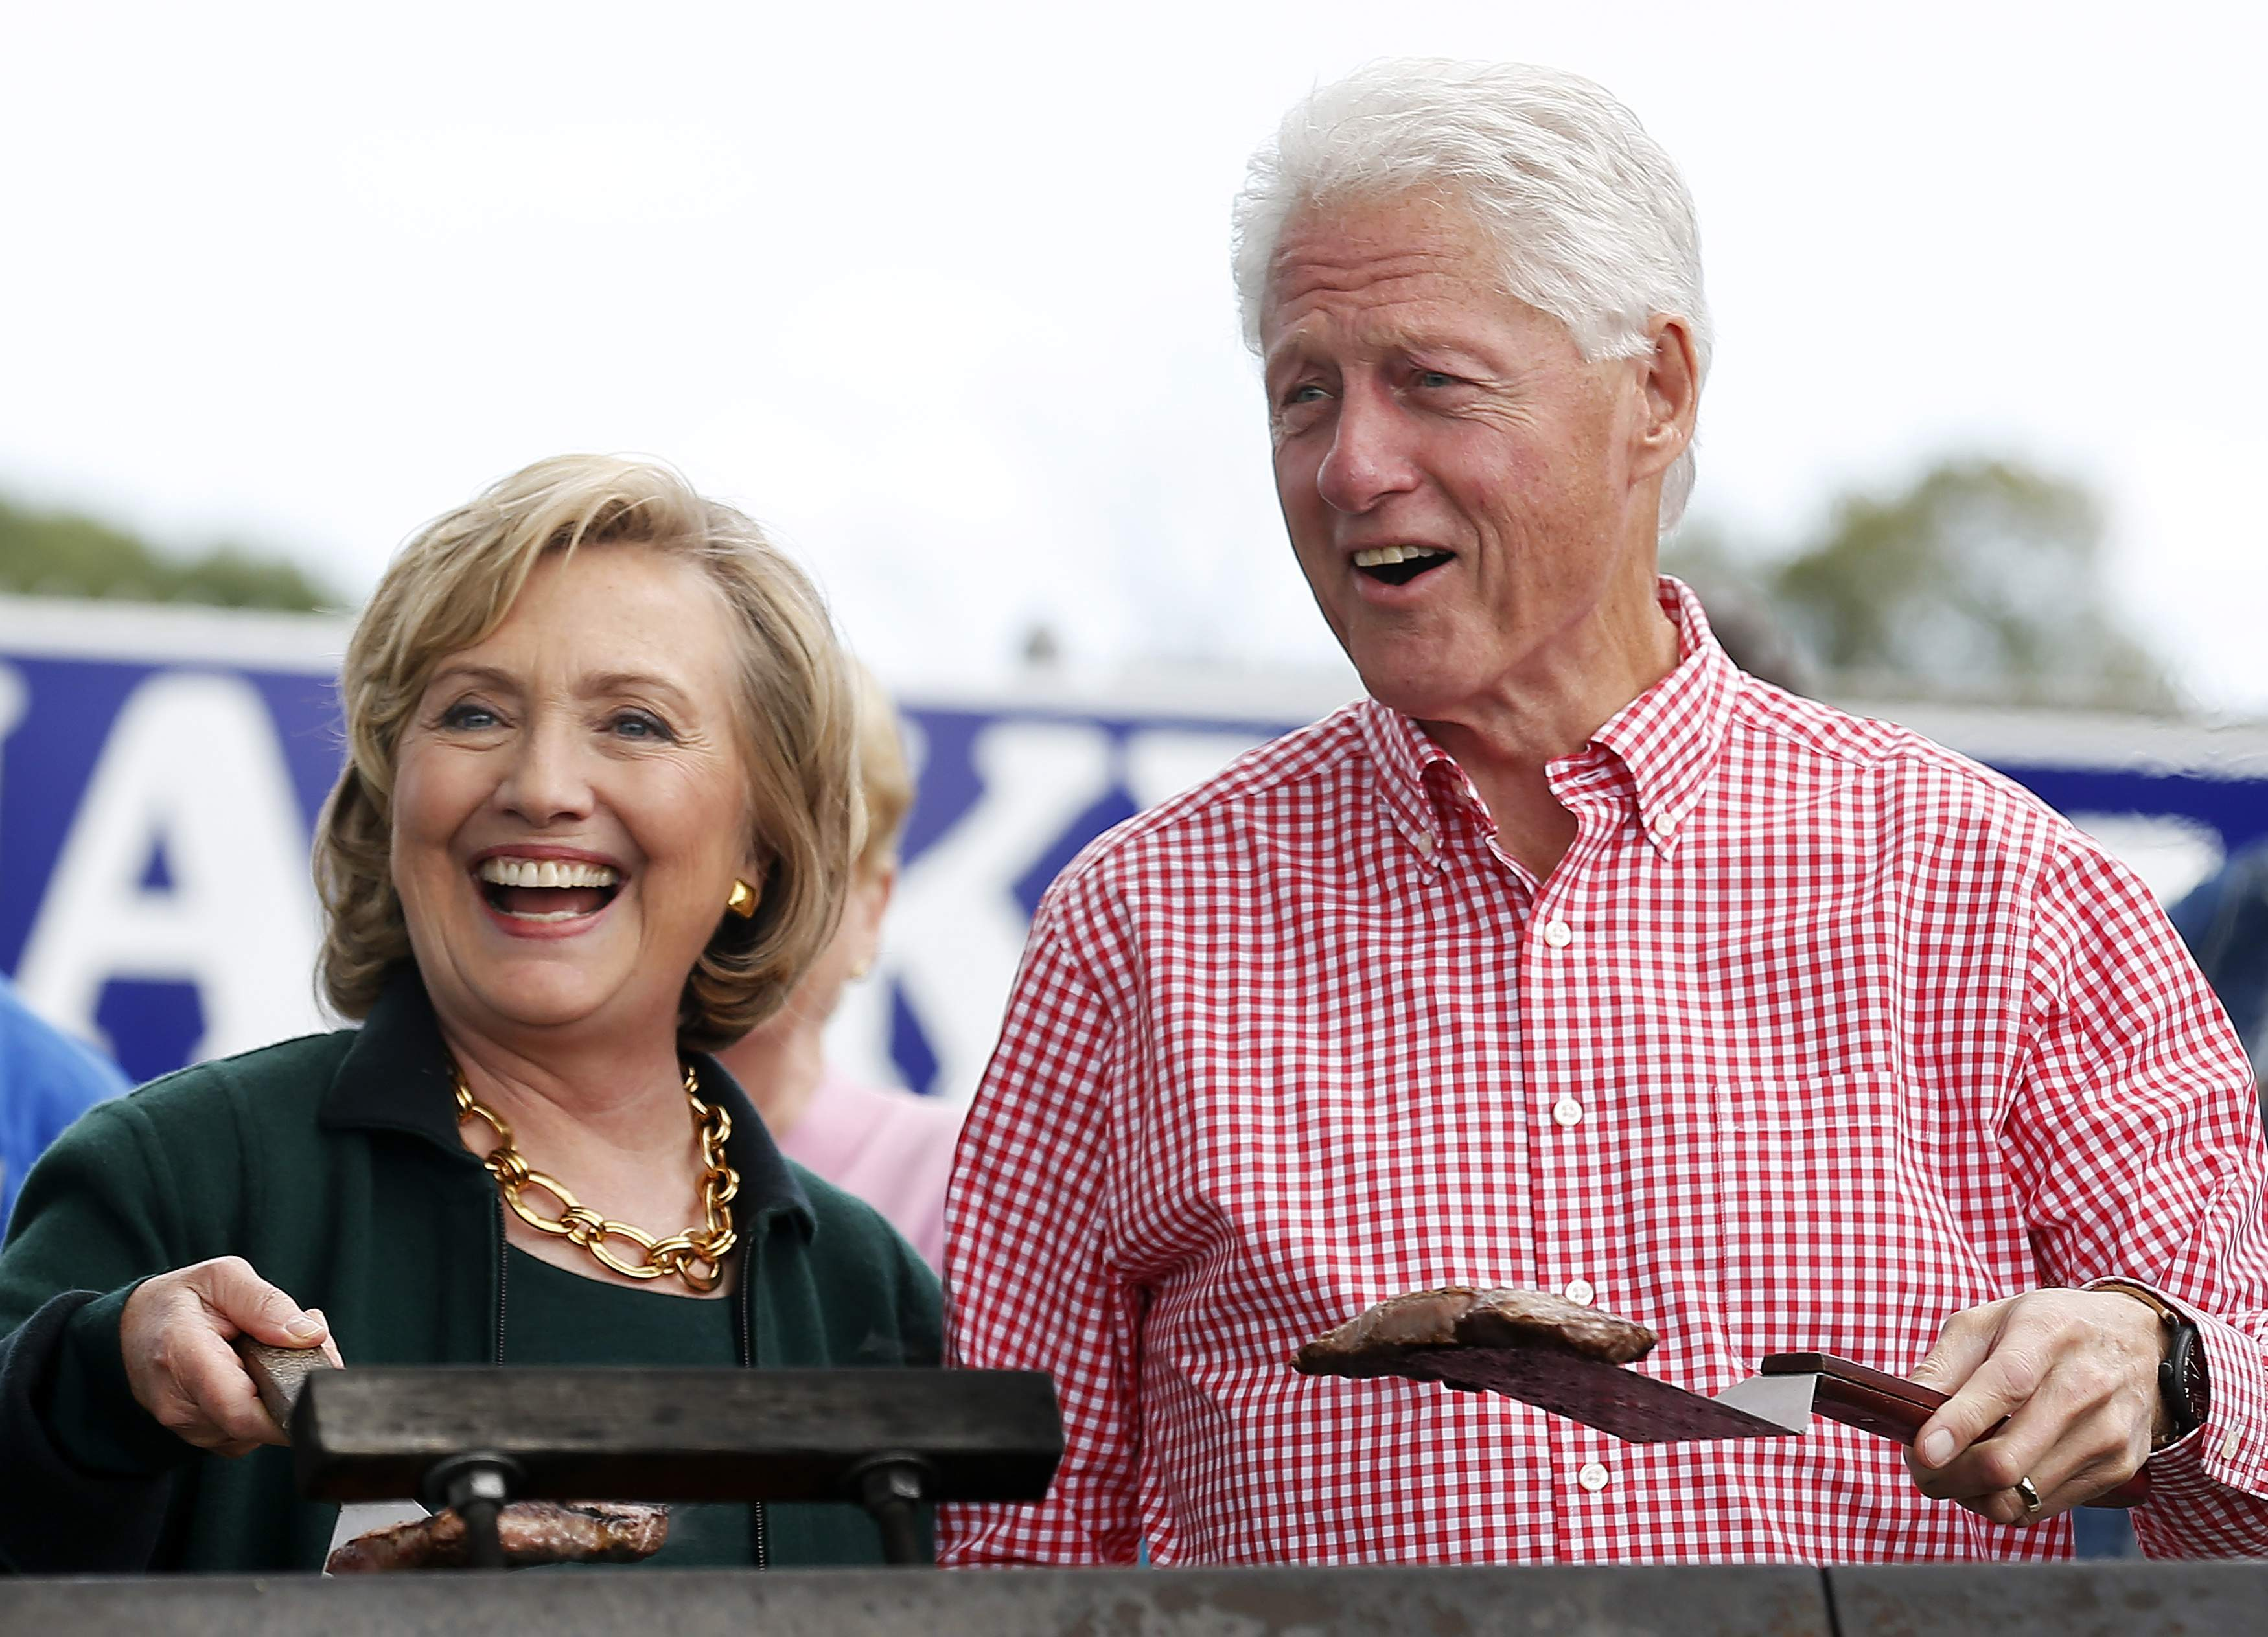 Clinton and her husband hold up some steaks at the 37th Harkin Steak Fry in Indianola, Iowa. (Photo: Jim Young/Reuters/Newscom)